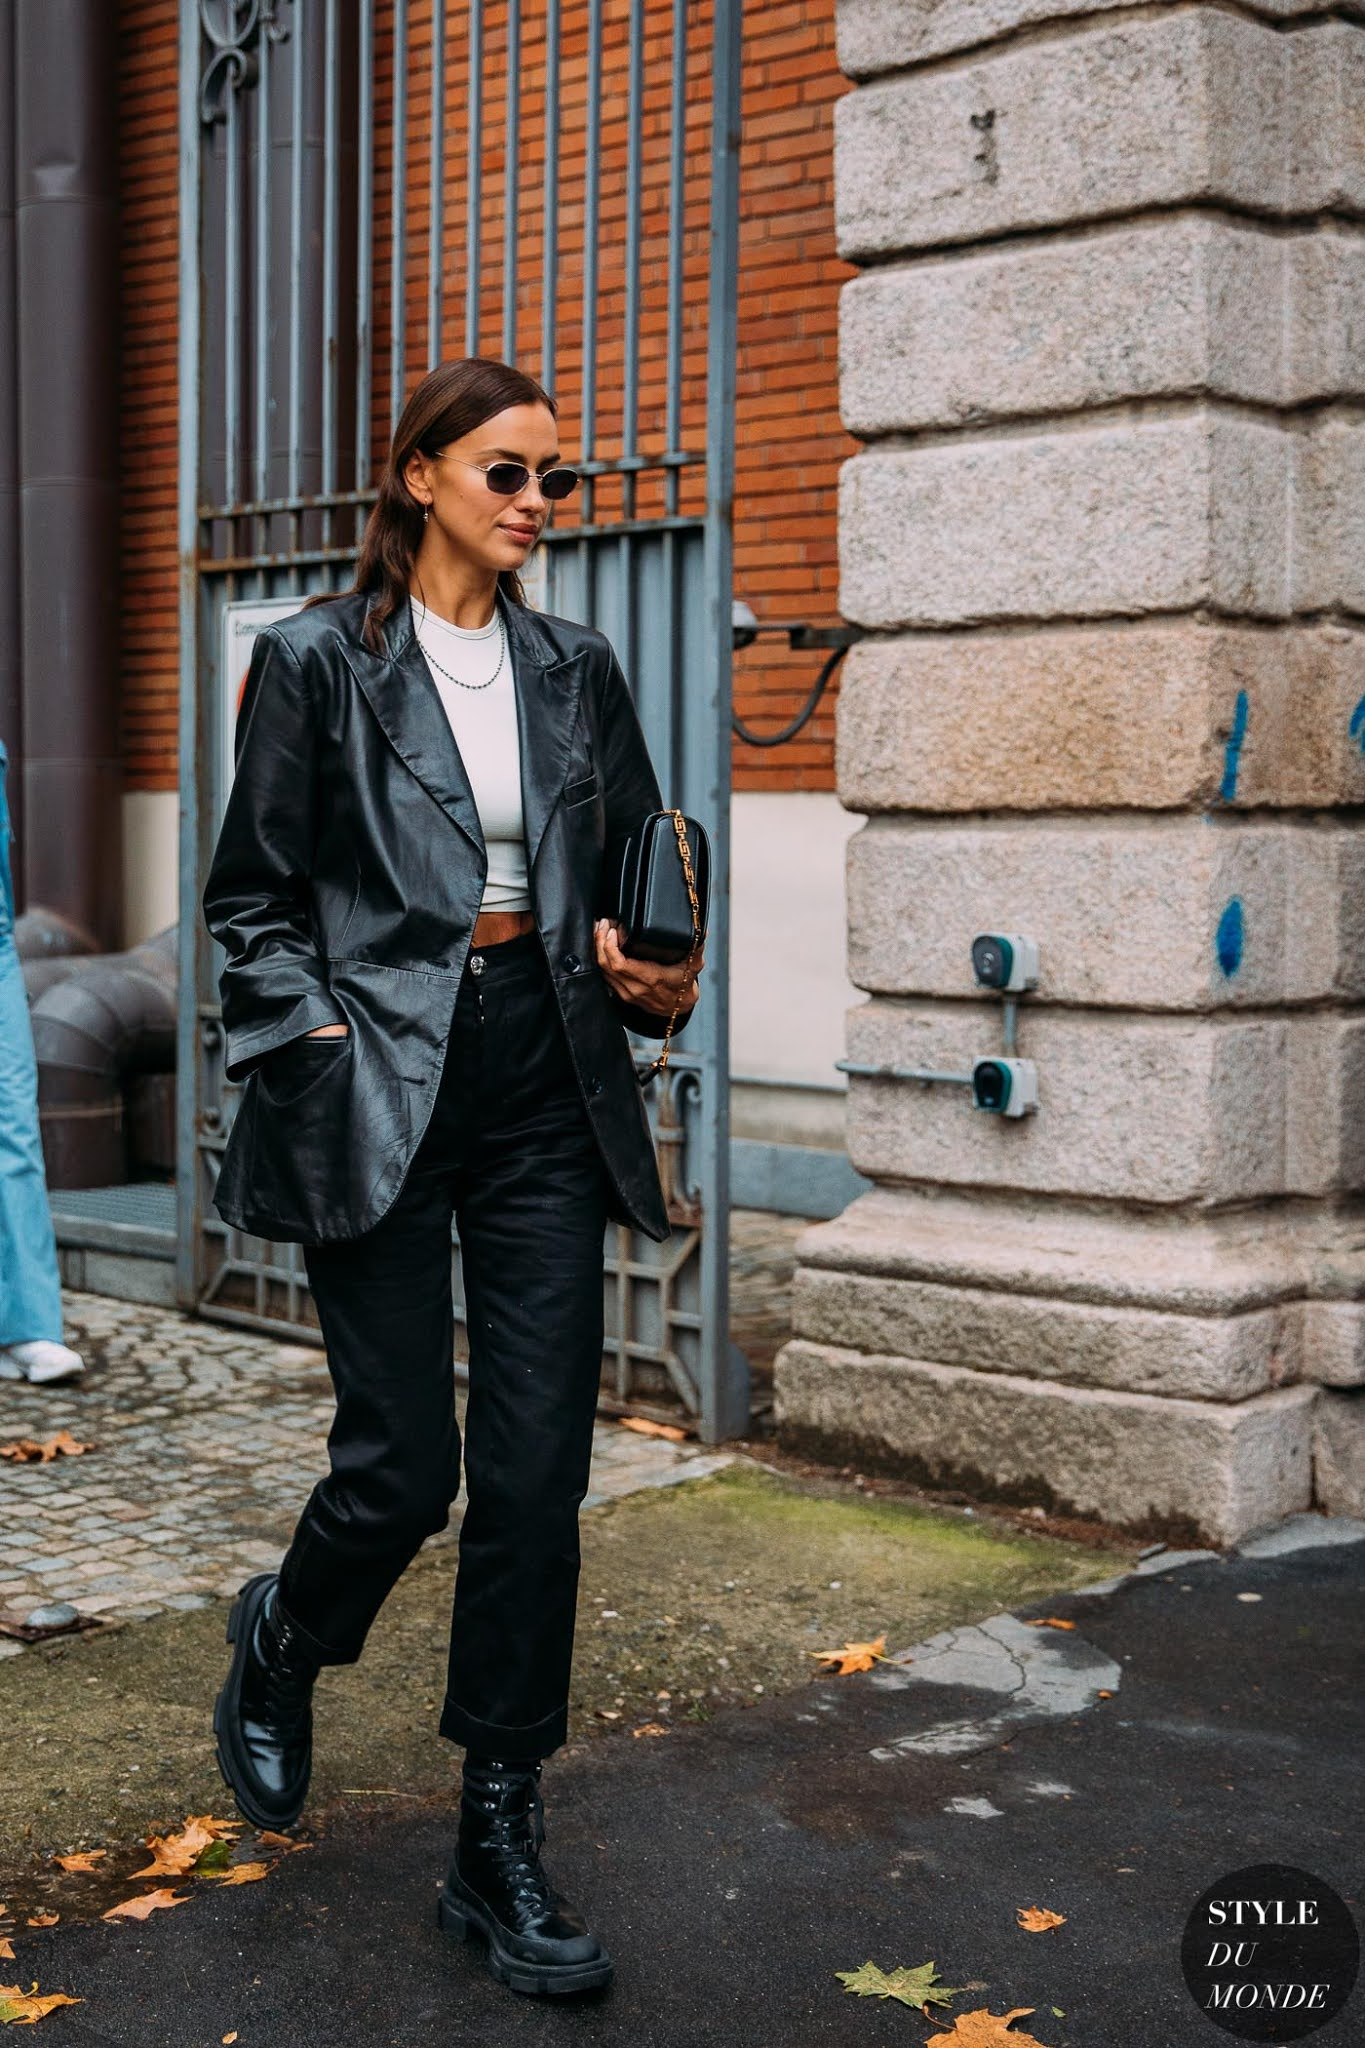 Irina Shayk in an Easy 3-Piece Outfit with a leather blazer, black jeans and lug-sole combat boots